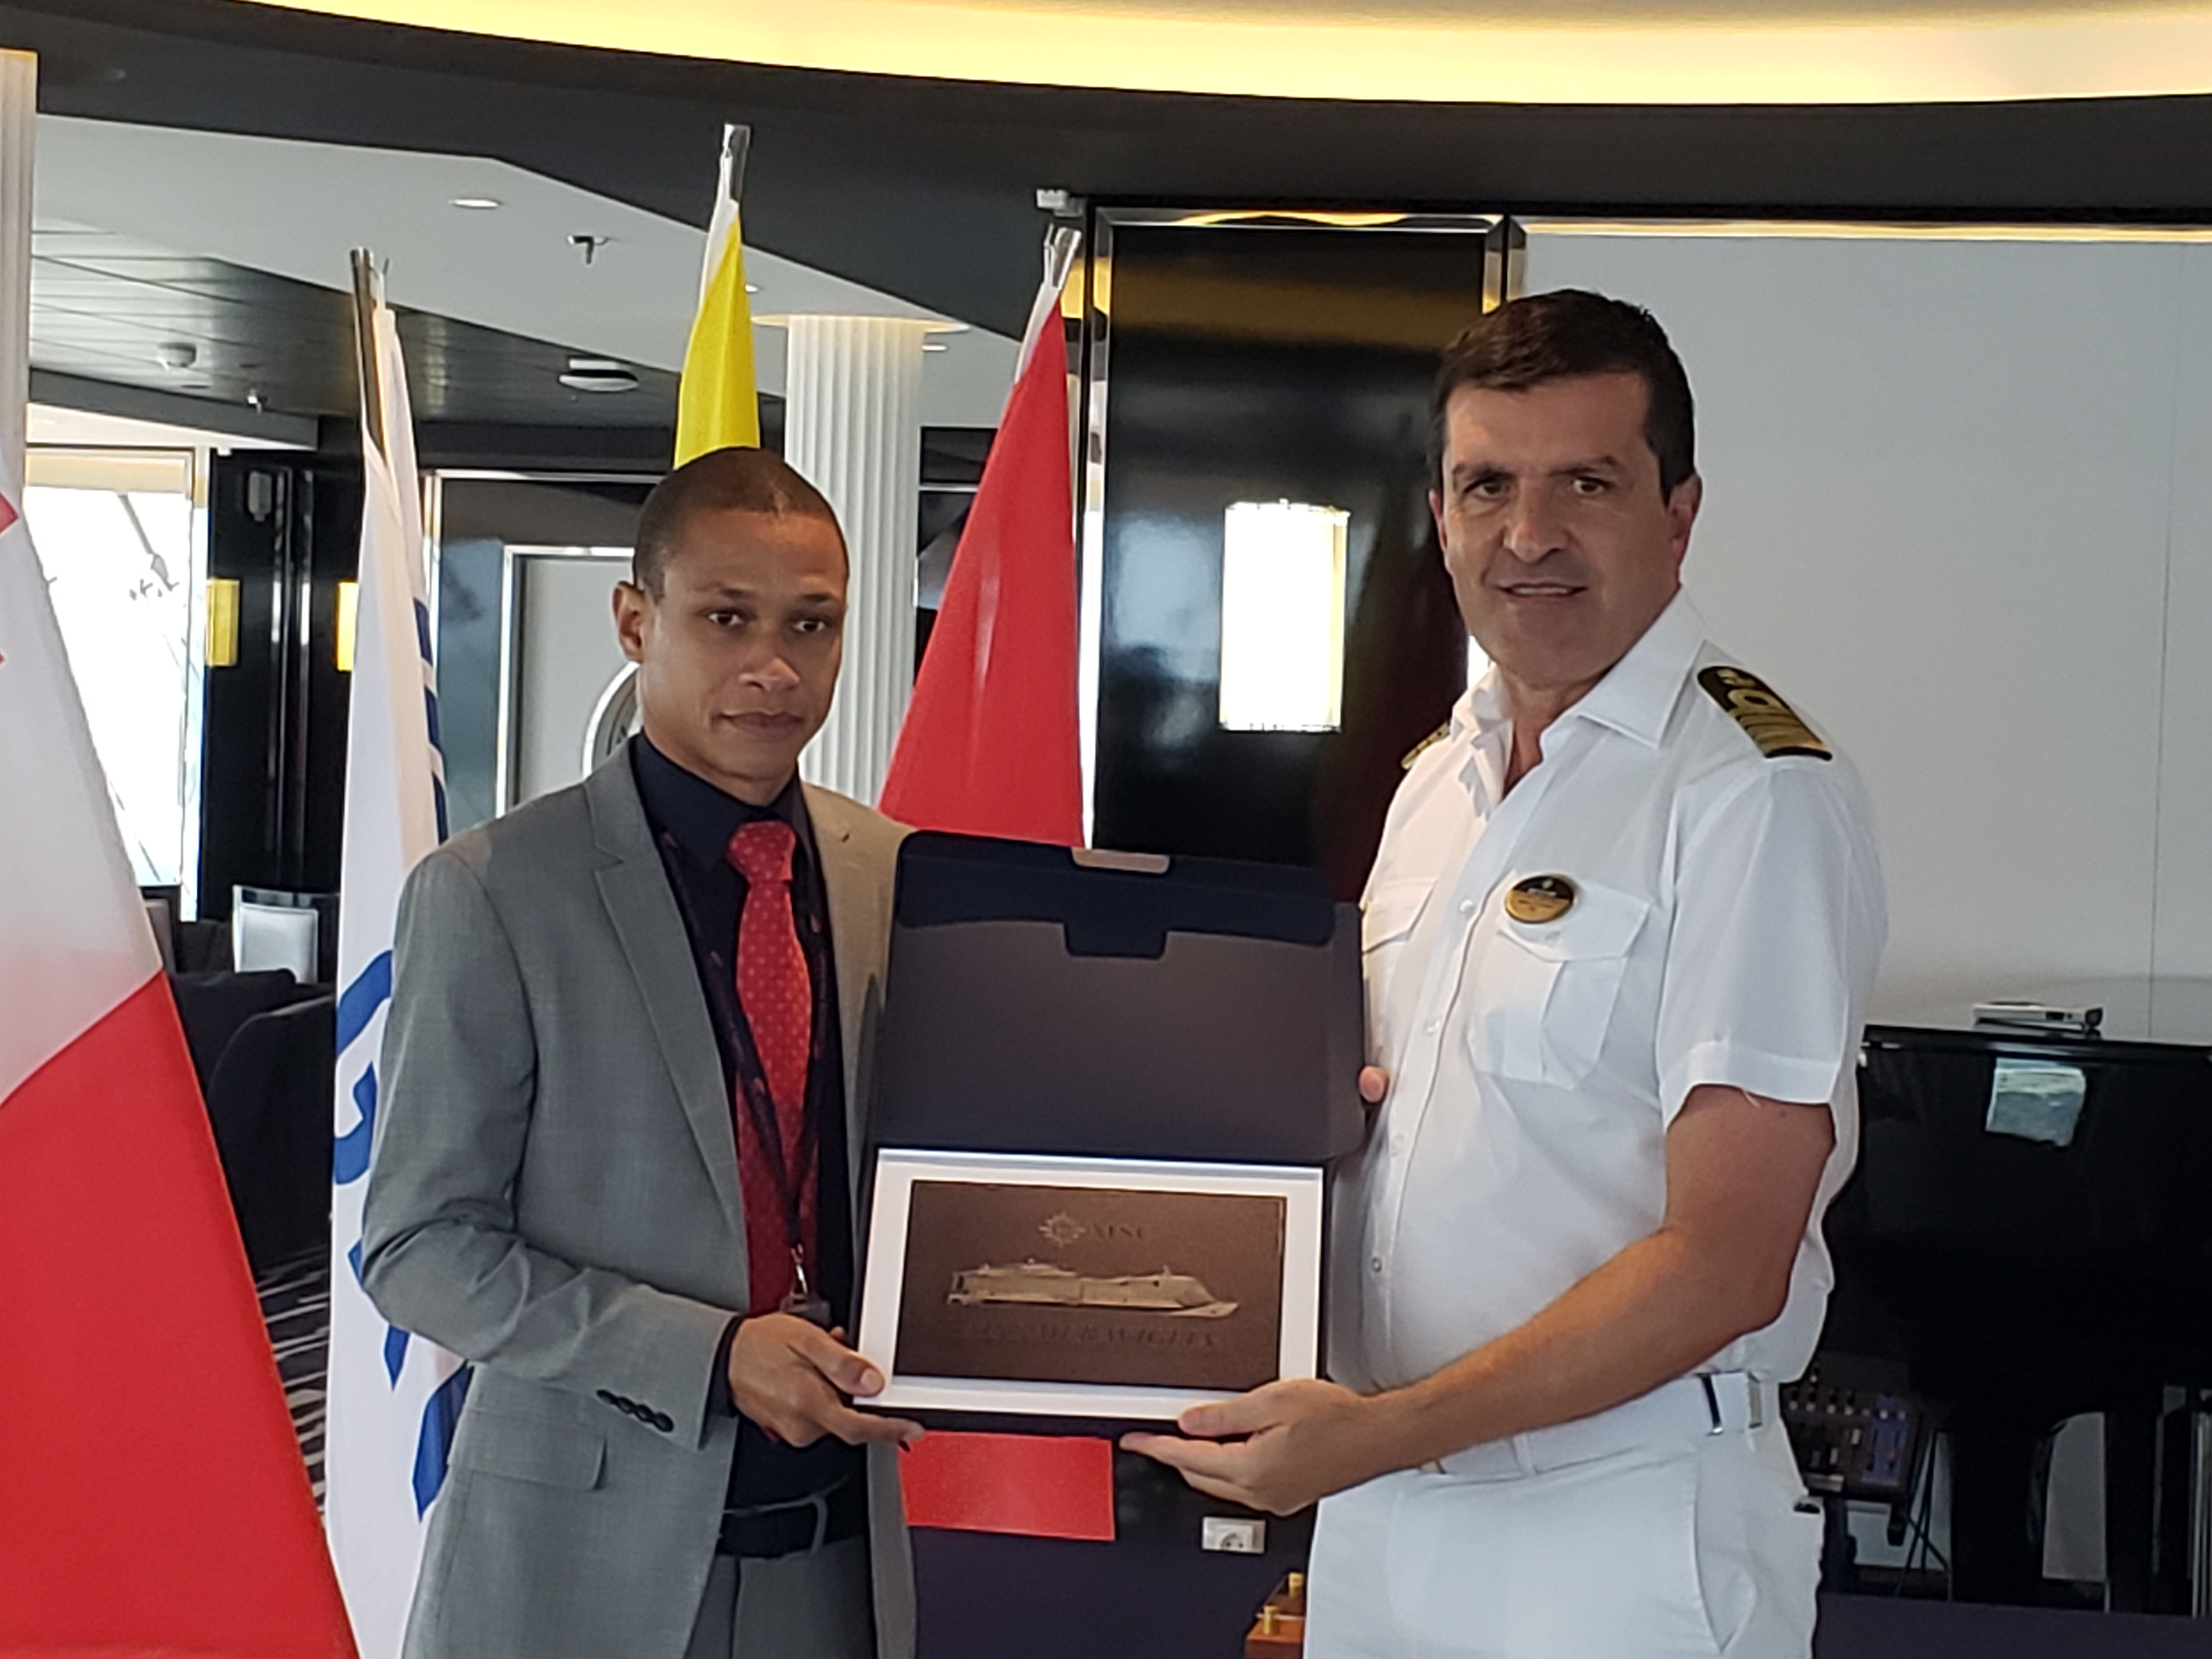 1.	Captain Stefano Battinelli presents a commemorative plaque Platinum Port Agency's Kreigg Yearwood (left).